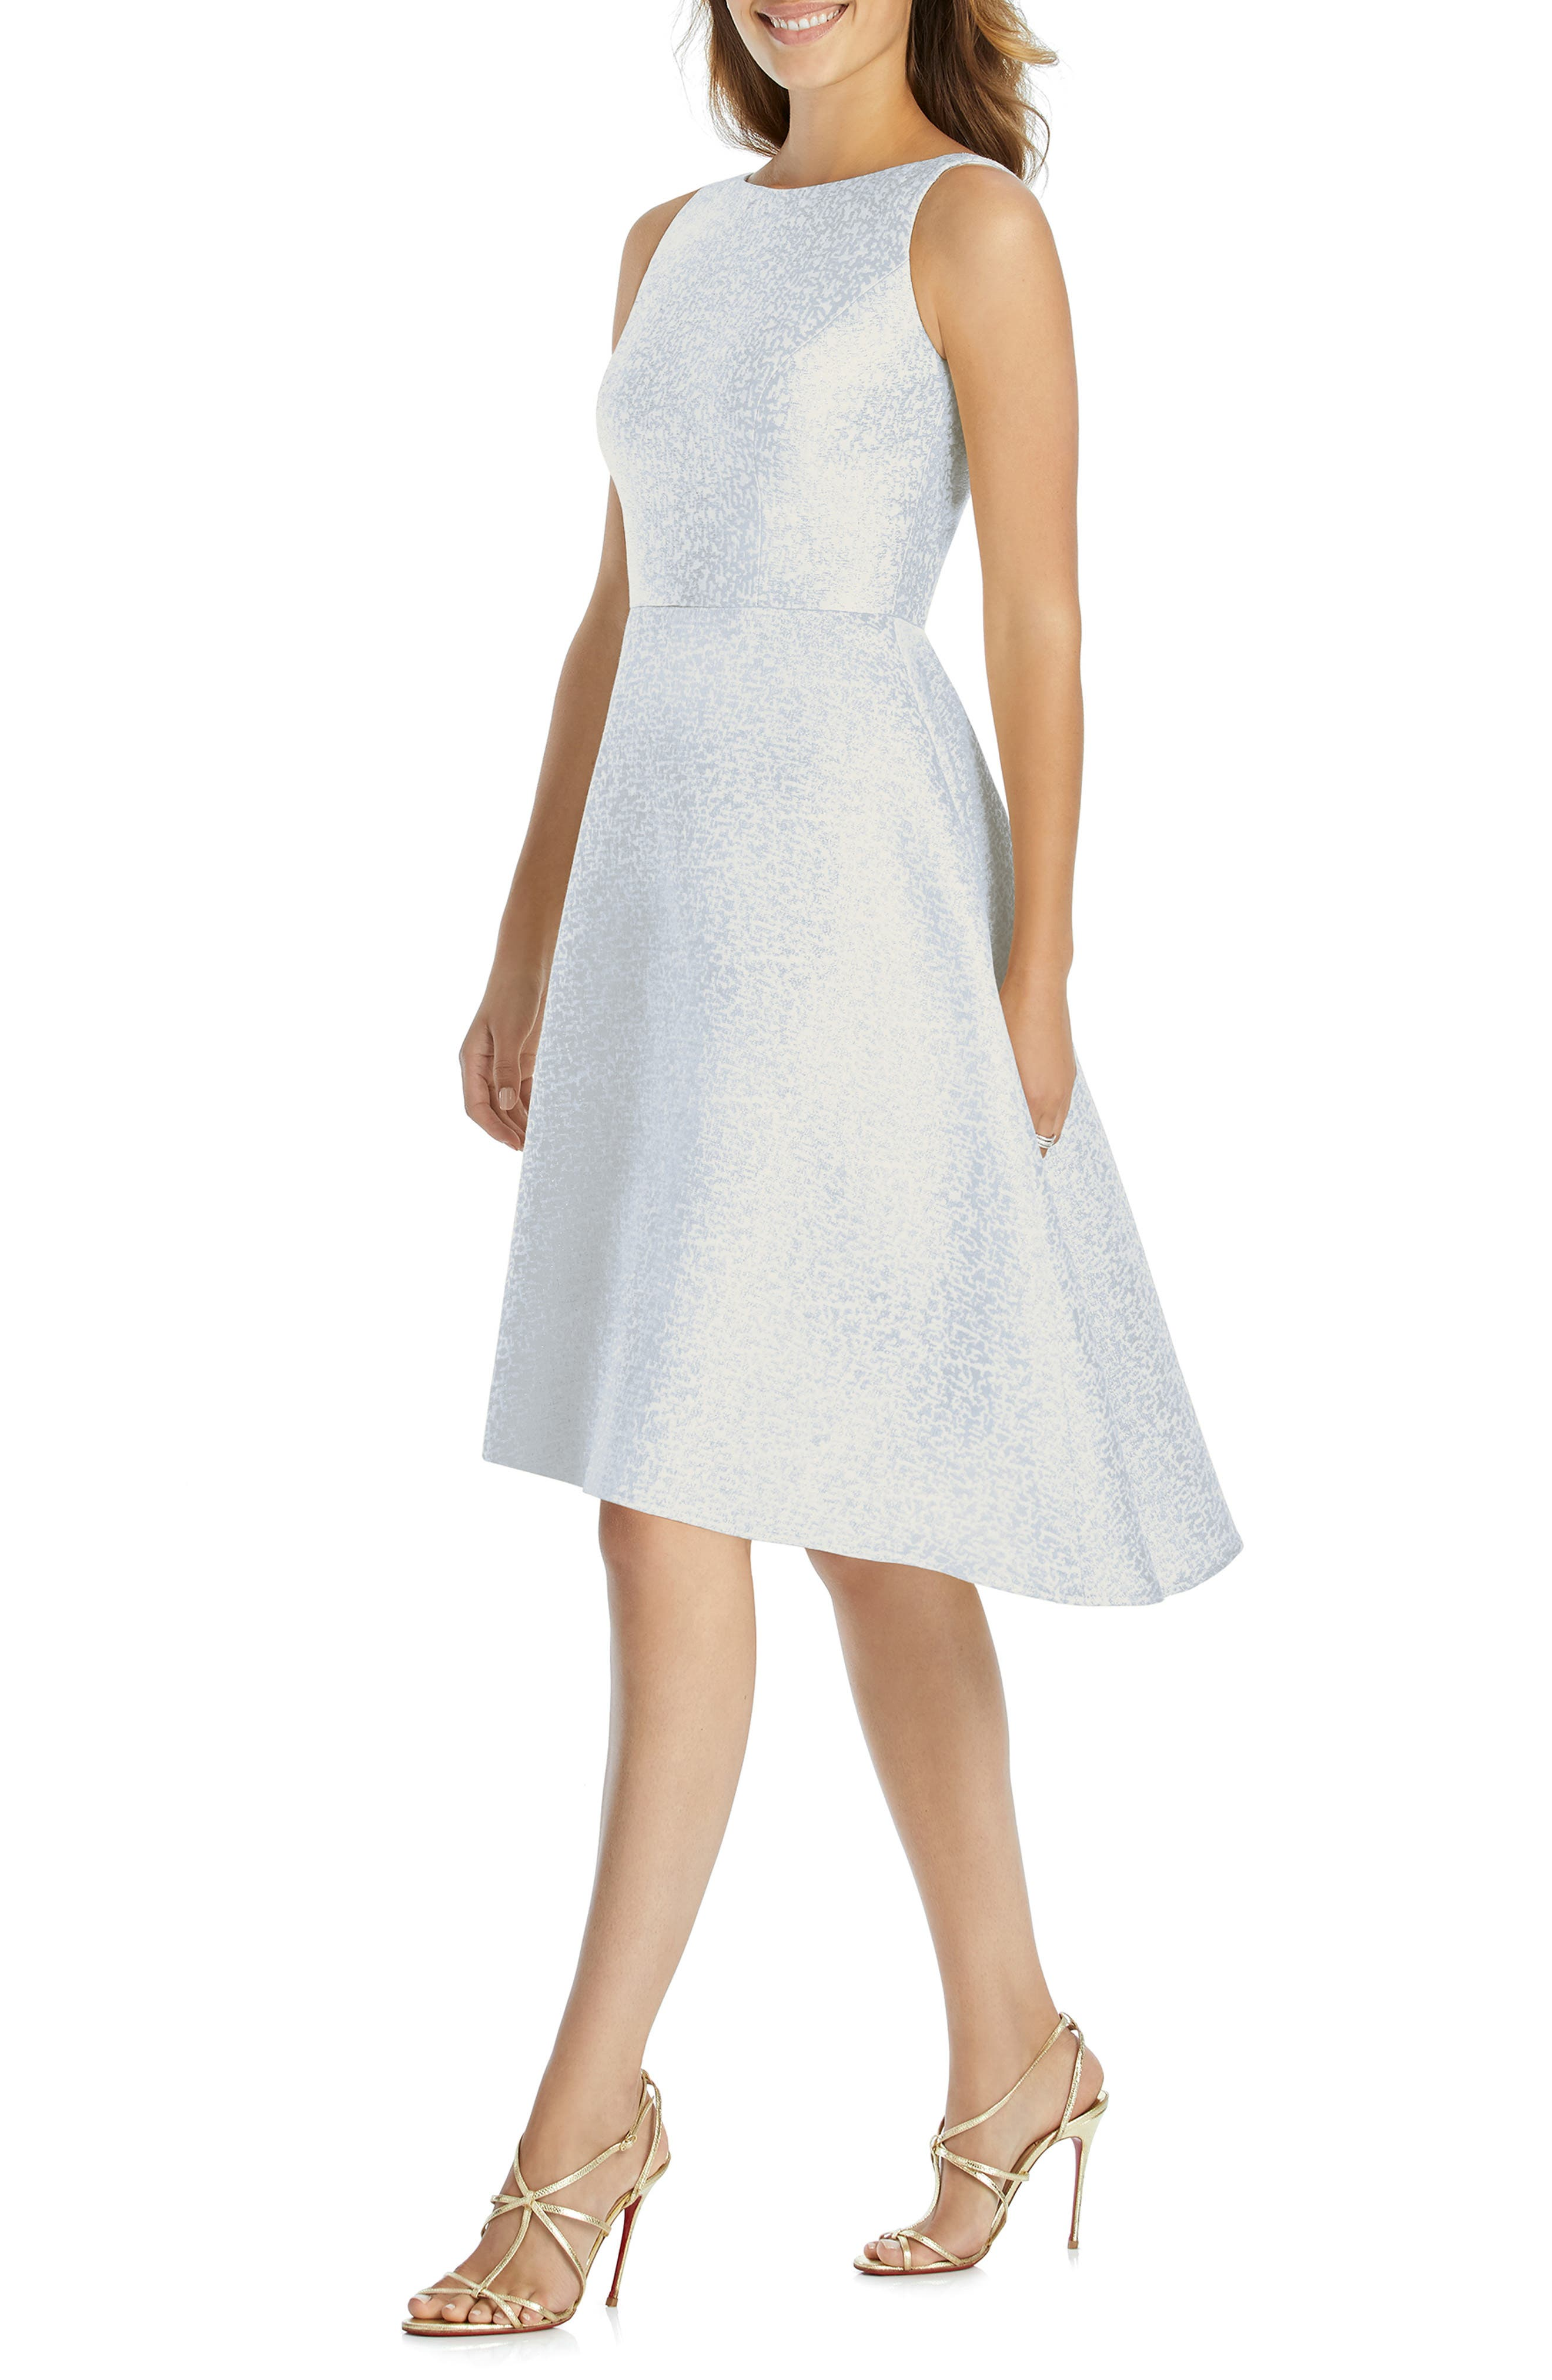 DESSY COLLECTION, Sateen High/Low Cocktail Dress, Main thumbnail 1, color, CLOUDY GOLD